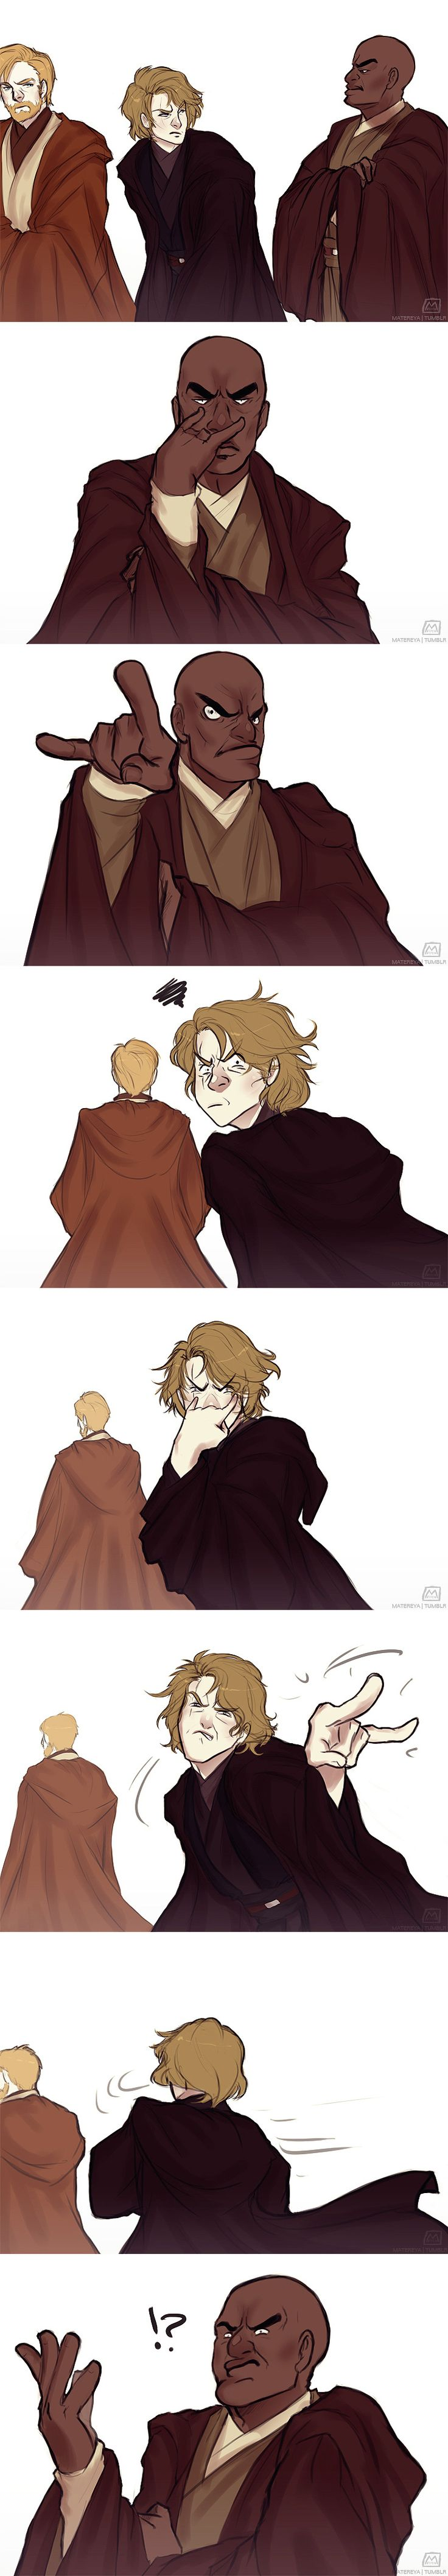 I've got my eyes on you, Skywalker by Matereya on DeviantArt